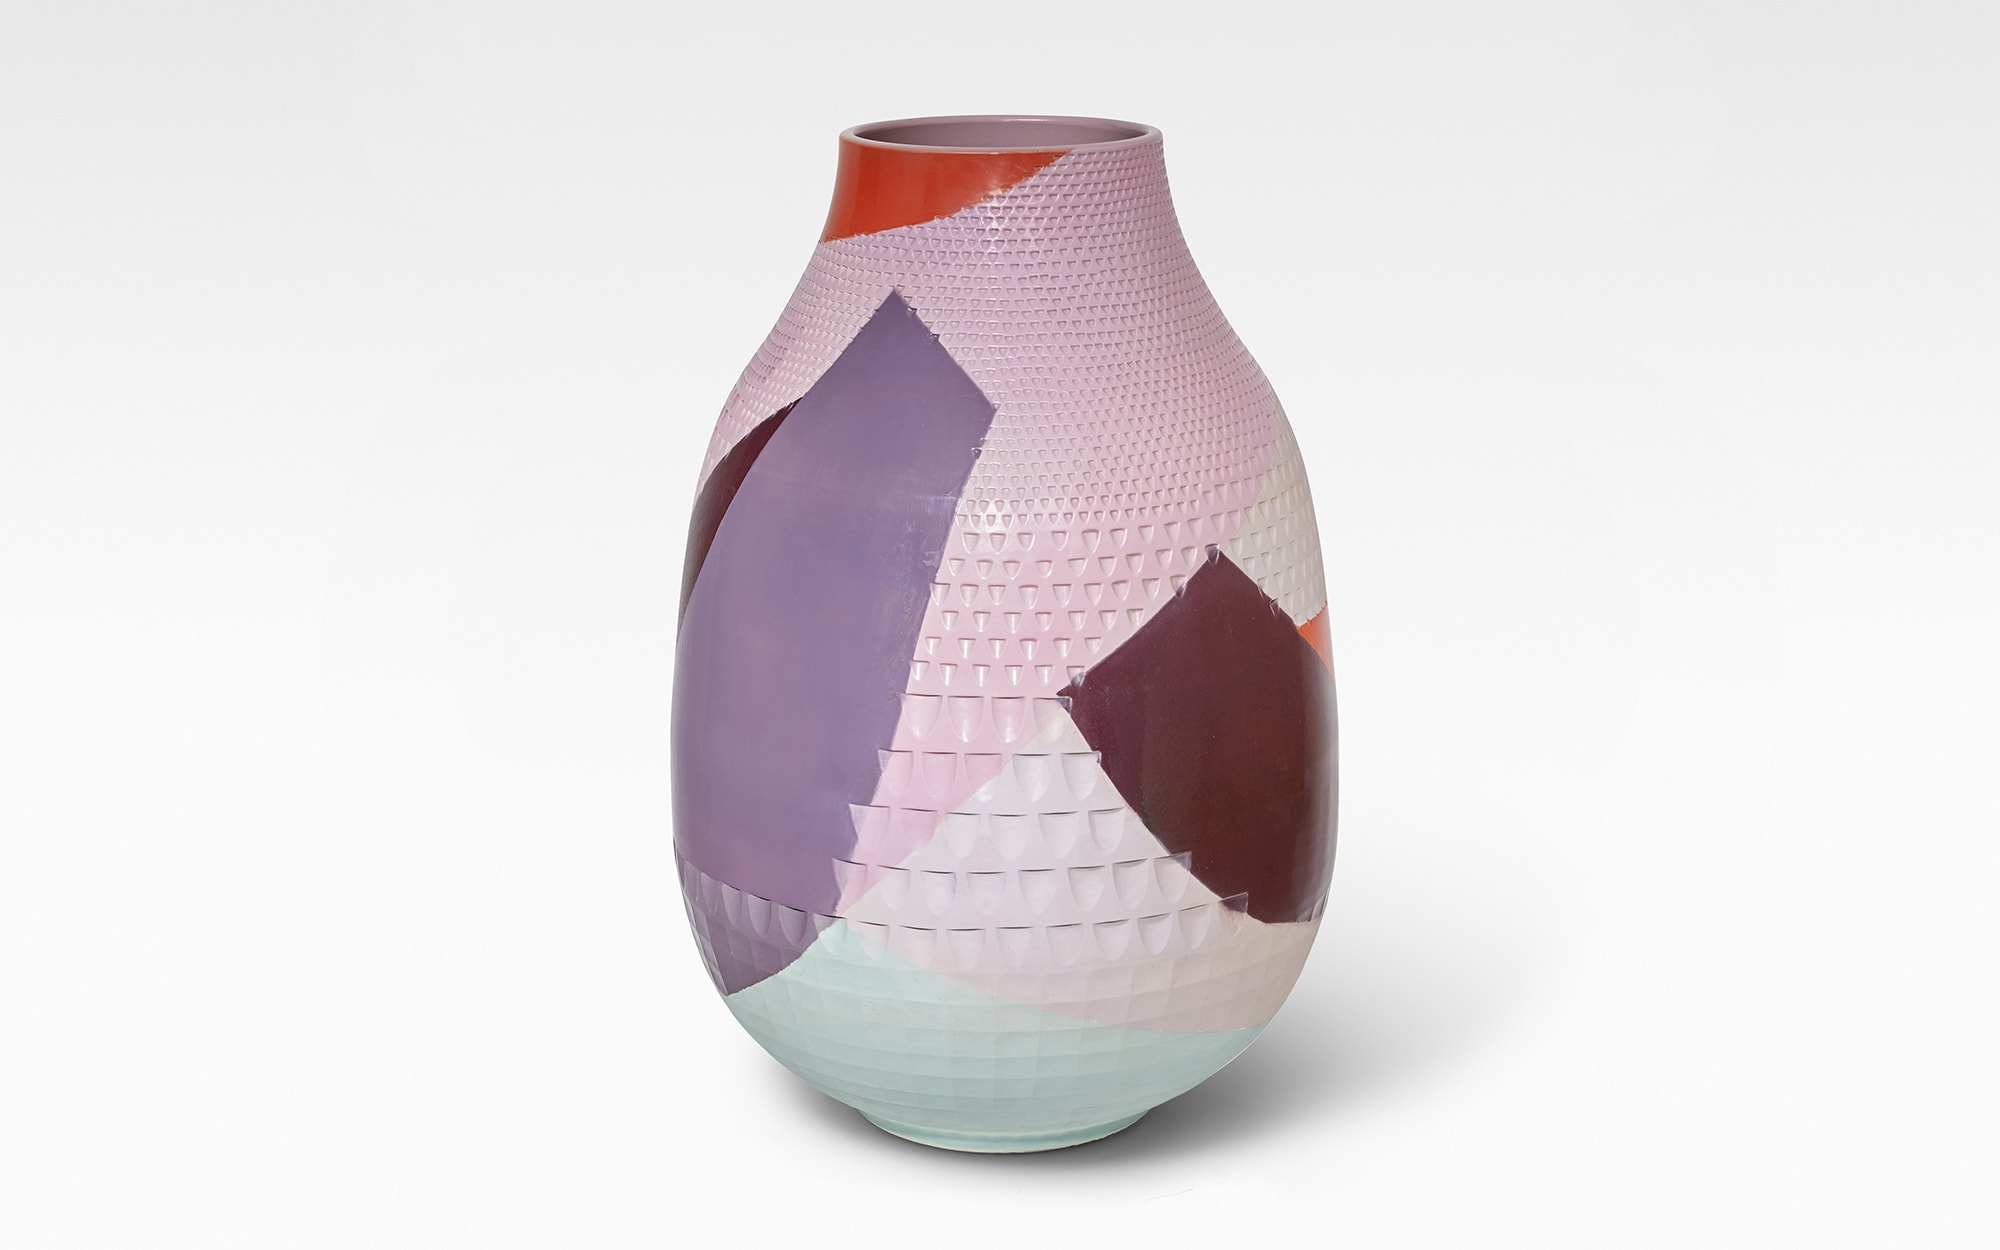 Hella Jongerius Diamond Vase - Day